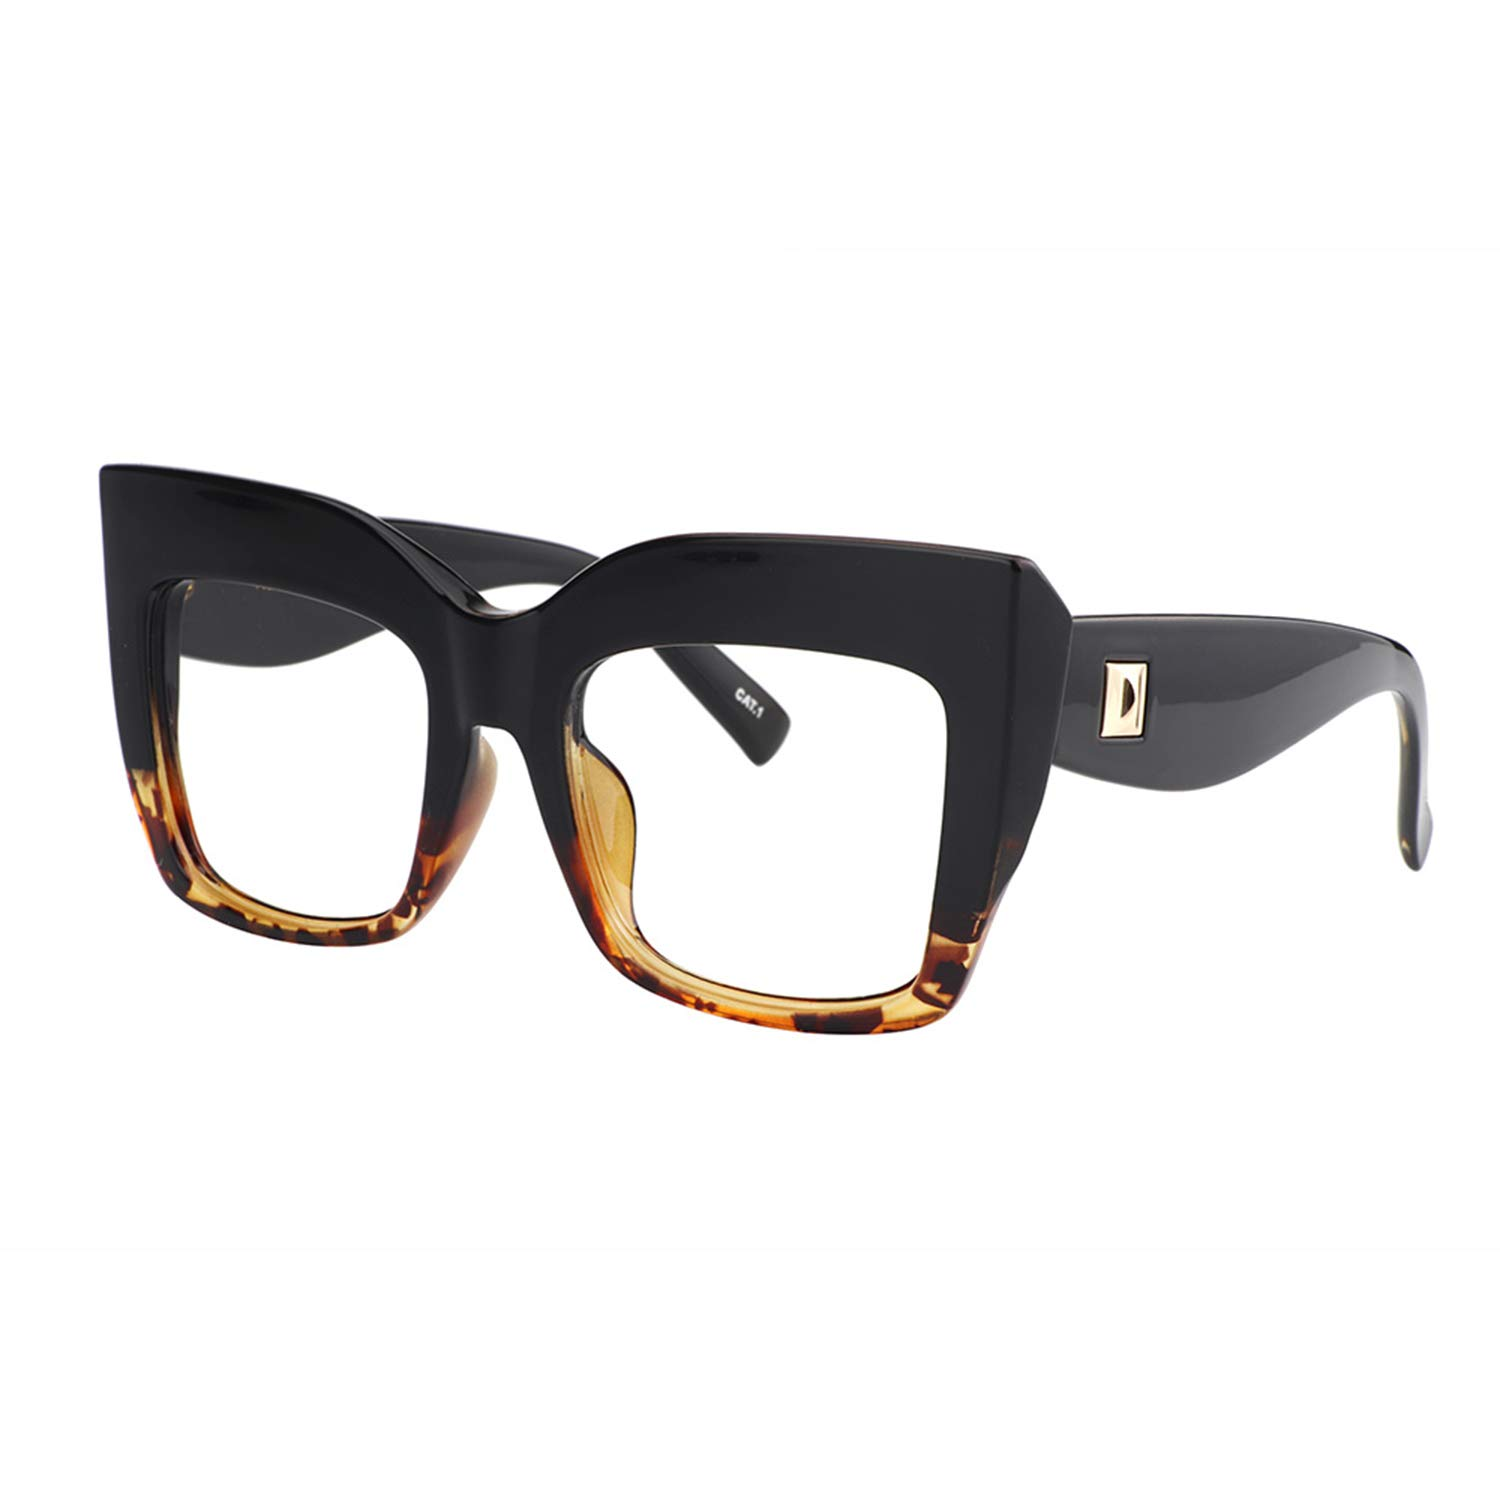 92d33ea52d91 Amazon.com: Zeelool Vintage Oversized Thick Cat Eye Glasses for Women with  Clear Lens Alberta FP0668-02 Tortoise: Clothing